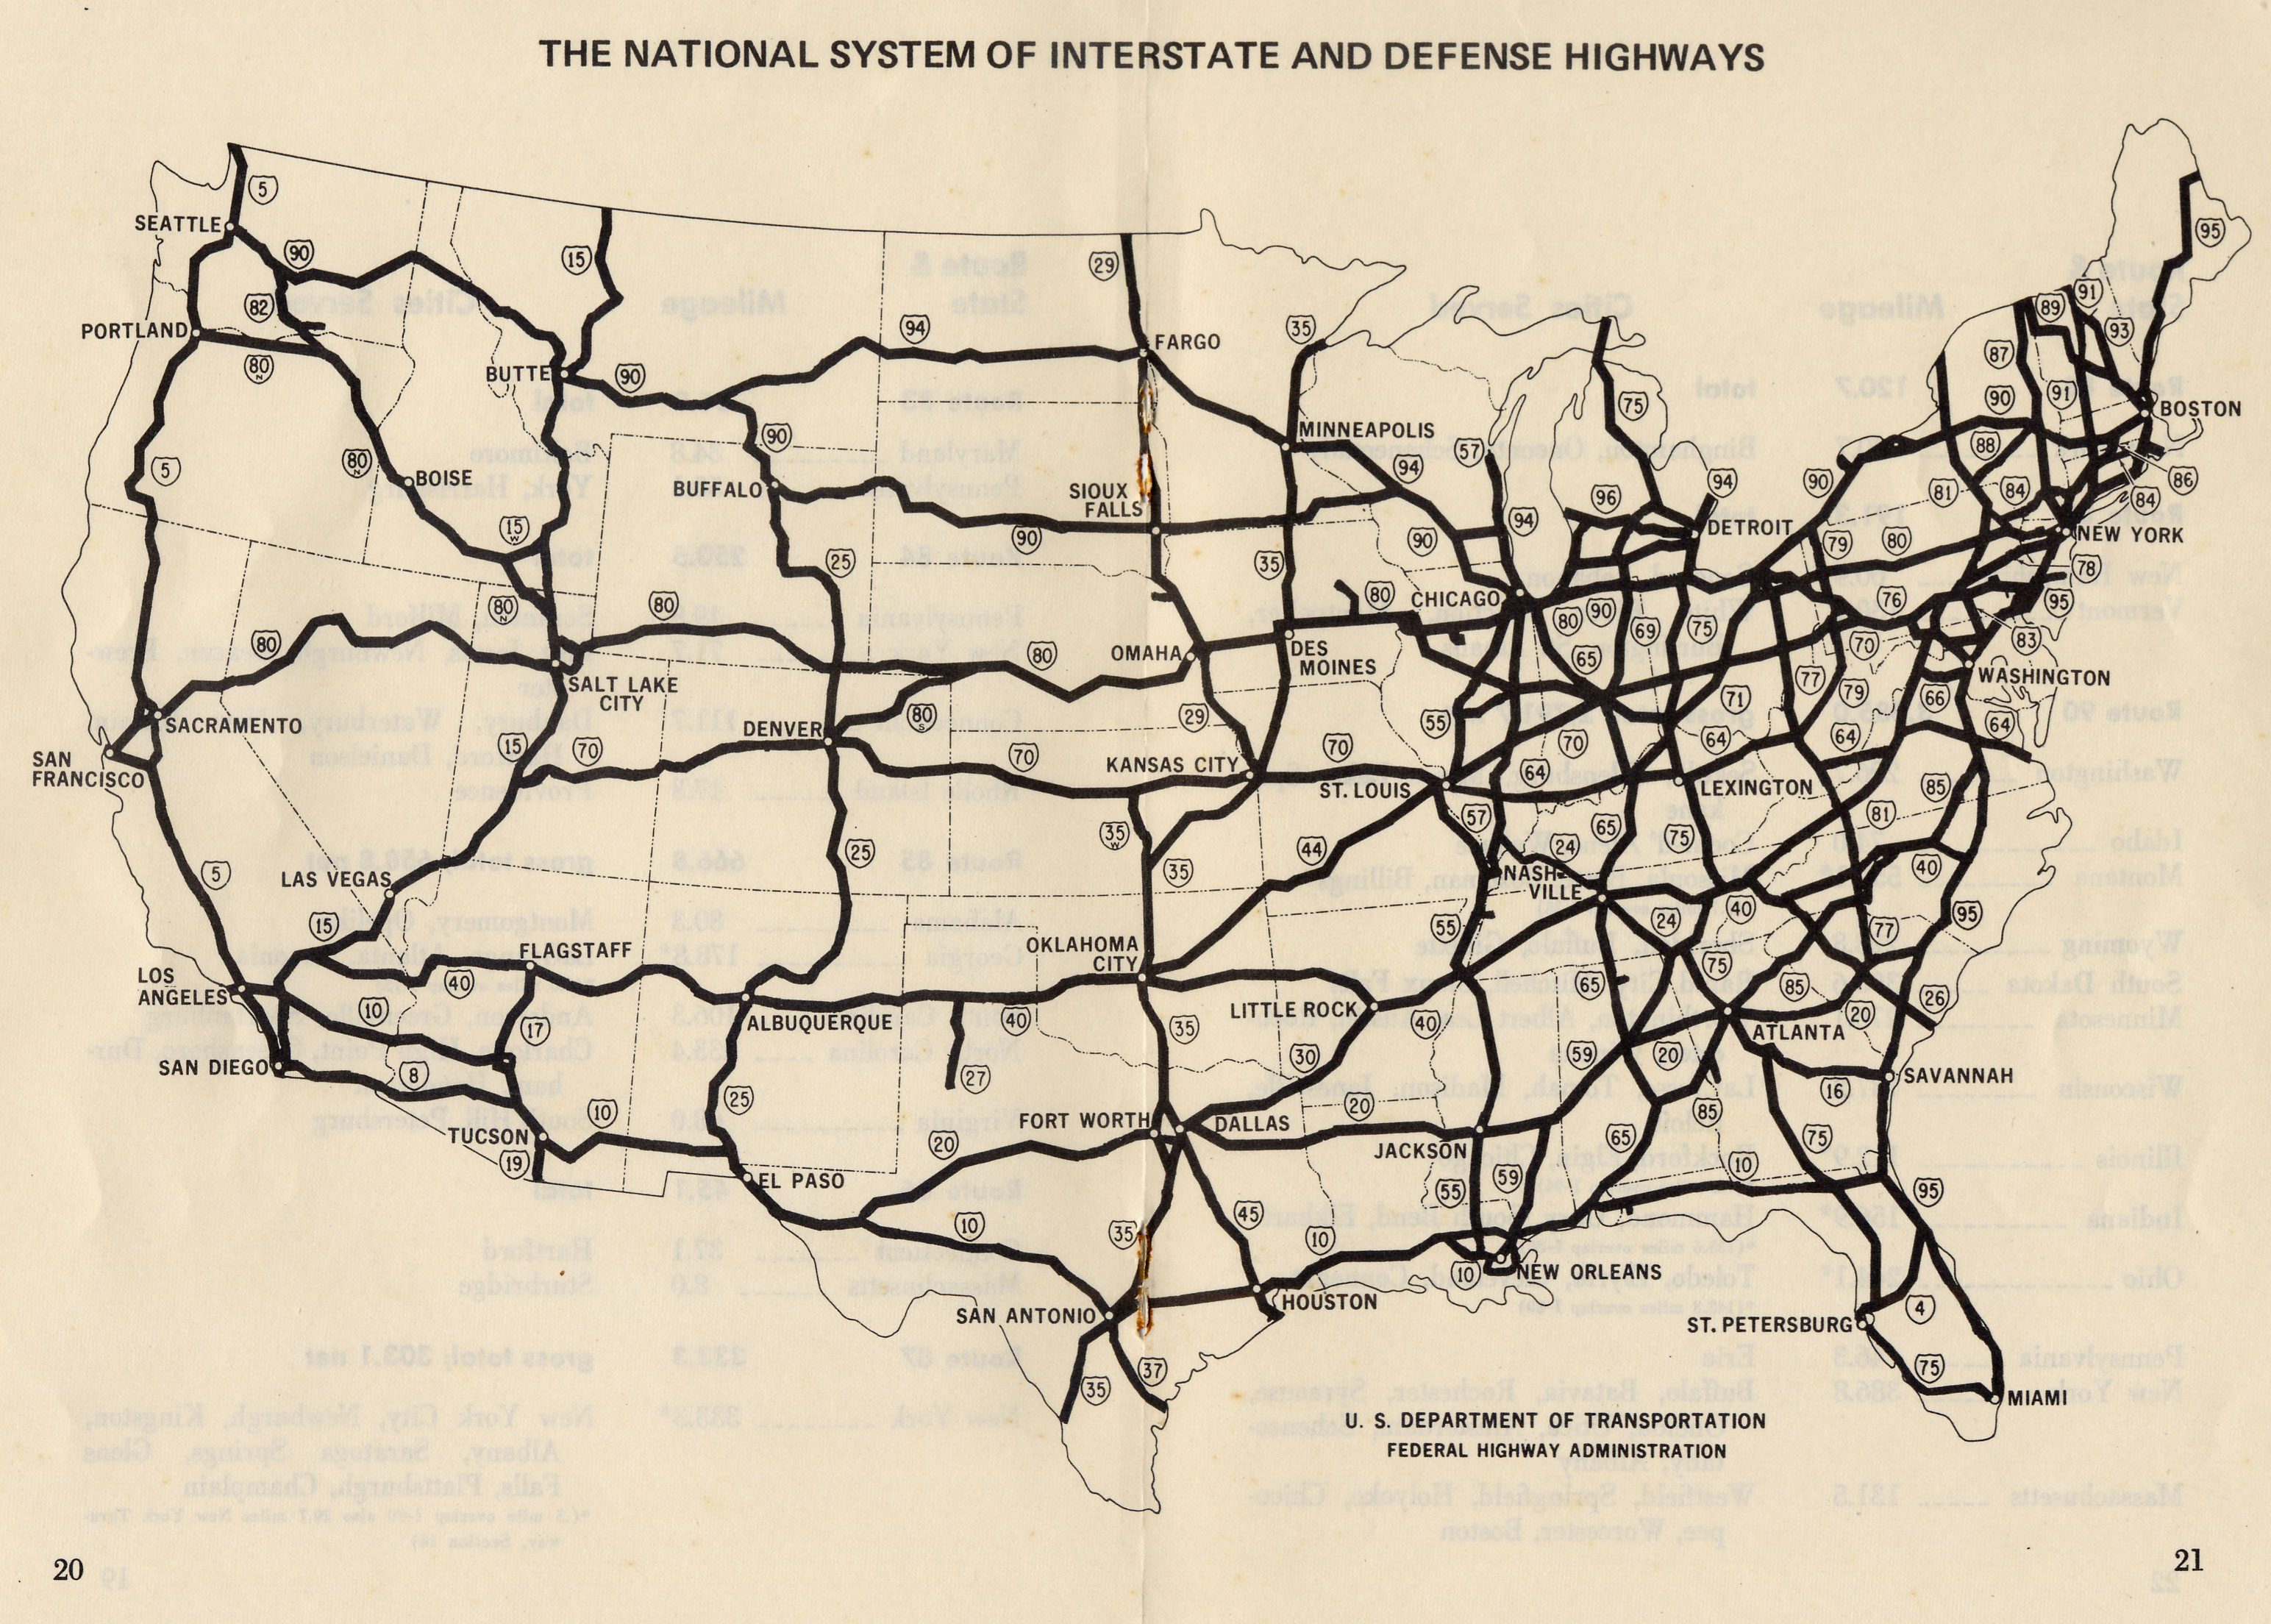 The Math Inside the US Highway System – BetterExplained  Us Map Interstate Highways on us federal highway map, us highway 40 map, us highway 30 map, us atlas highway map, us highway 20 map, i-35 interstate map, us city highway map, us i-90 map, us highway 80 map, southeast us highway map, interstate highway 10 map, interstate road map, us bicycle map, interstate 90 highway map, interactive us highway map, us western highway map, us highway 50 map, us national highway map, united states interstate and highway map, interstate highway system map,